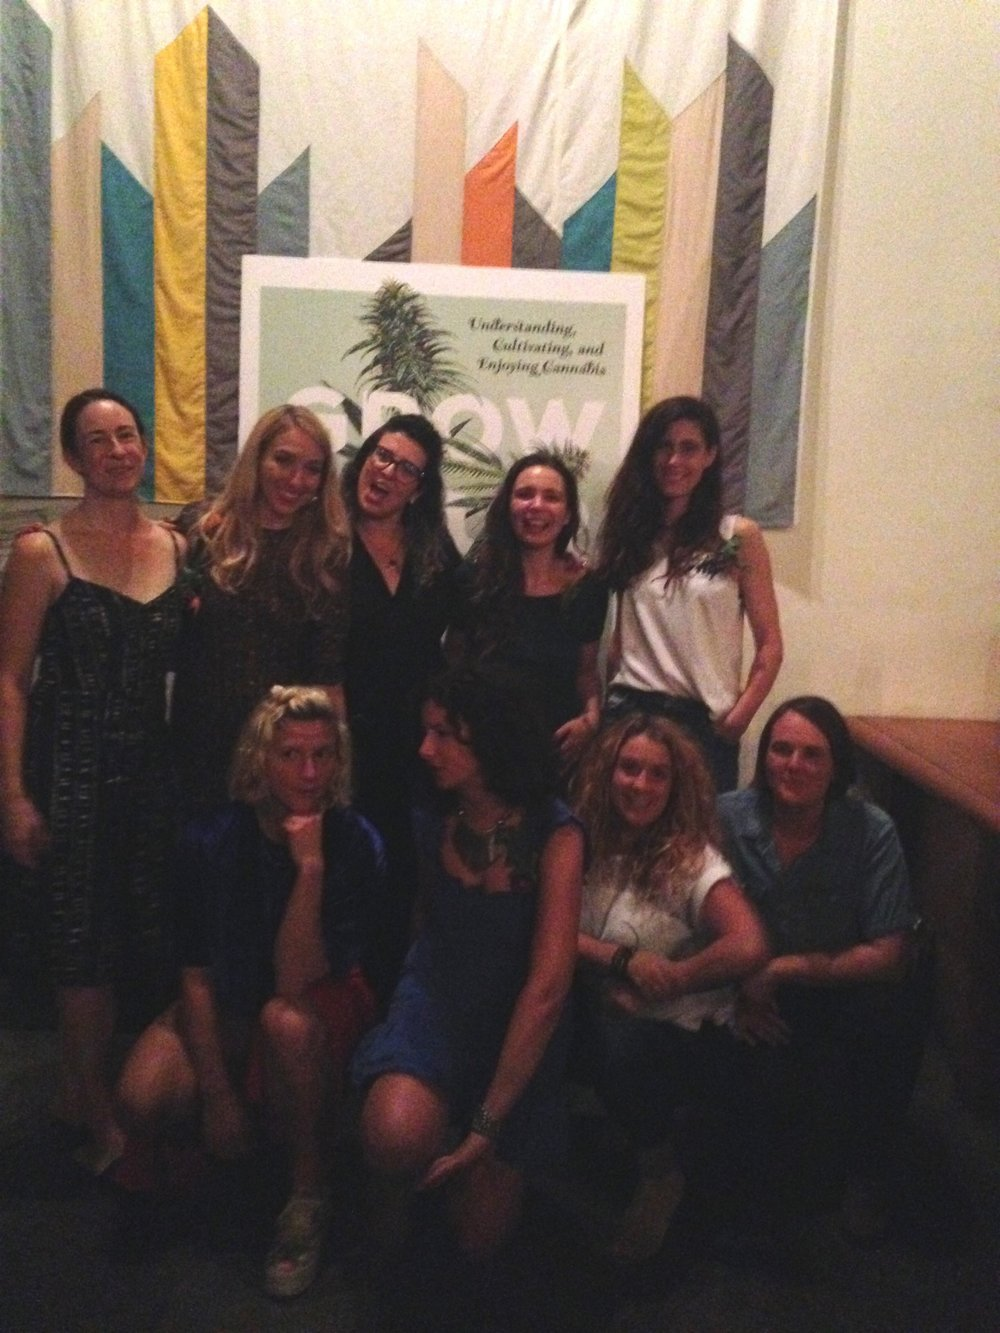 We got all the speakers together and then some for this sweet shot. Women in cannabis!!!